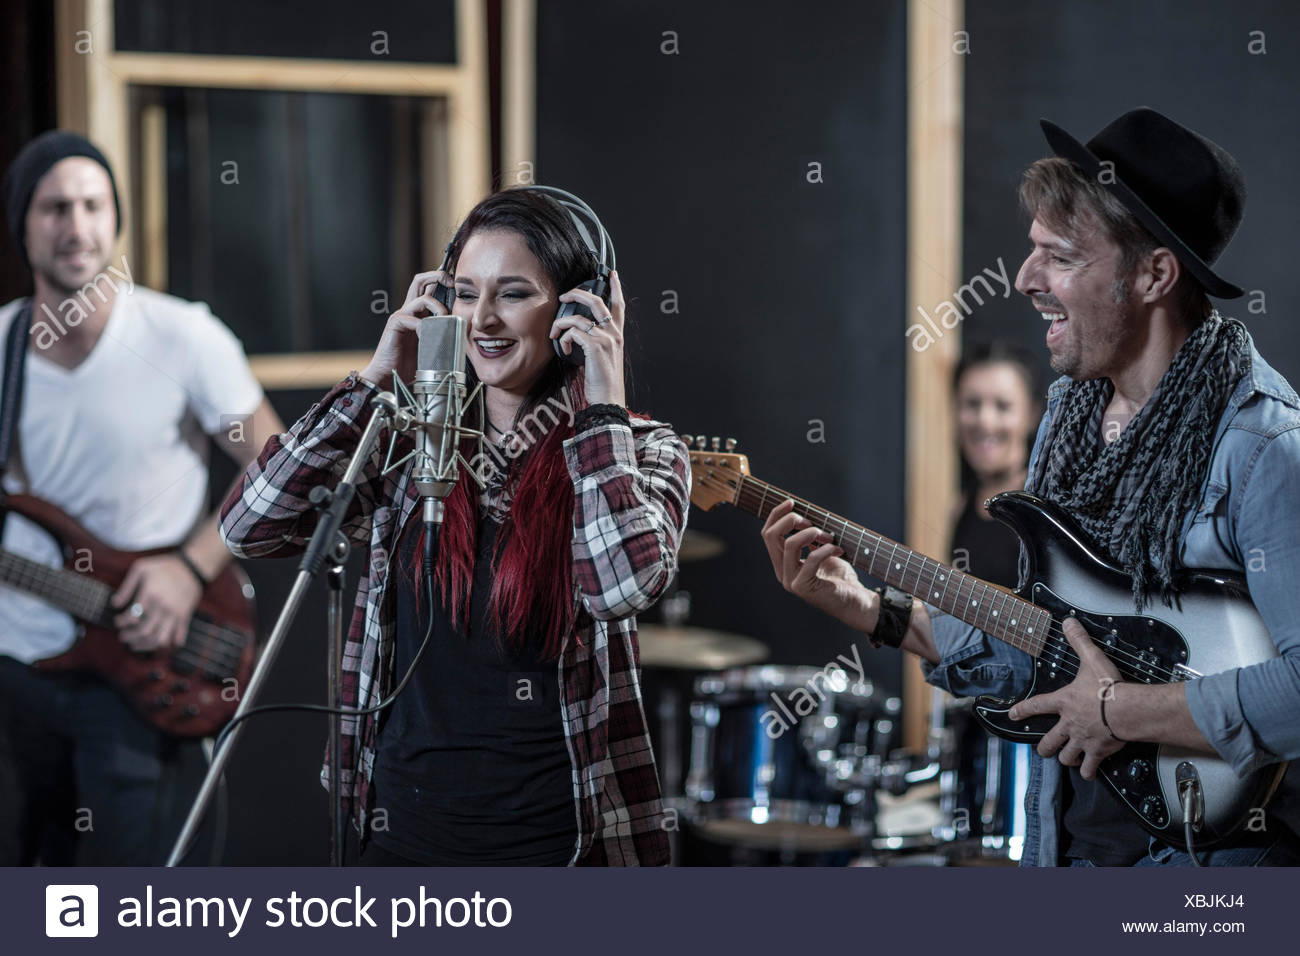 Rock band session in recording studio - Stock Image